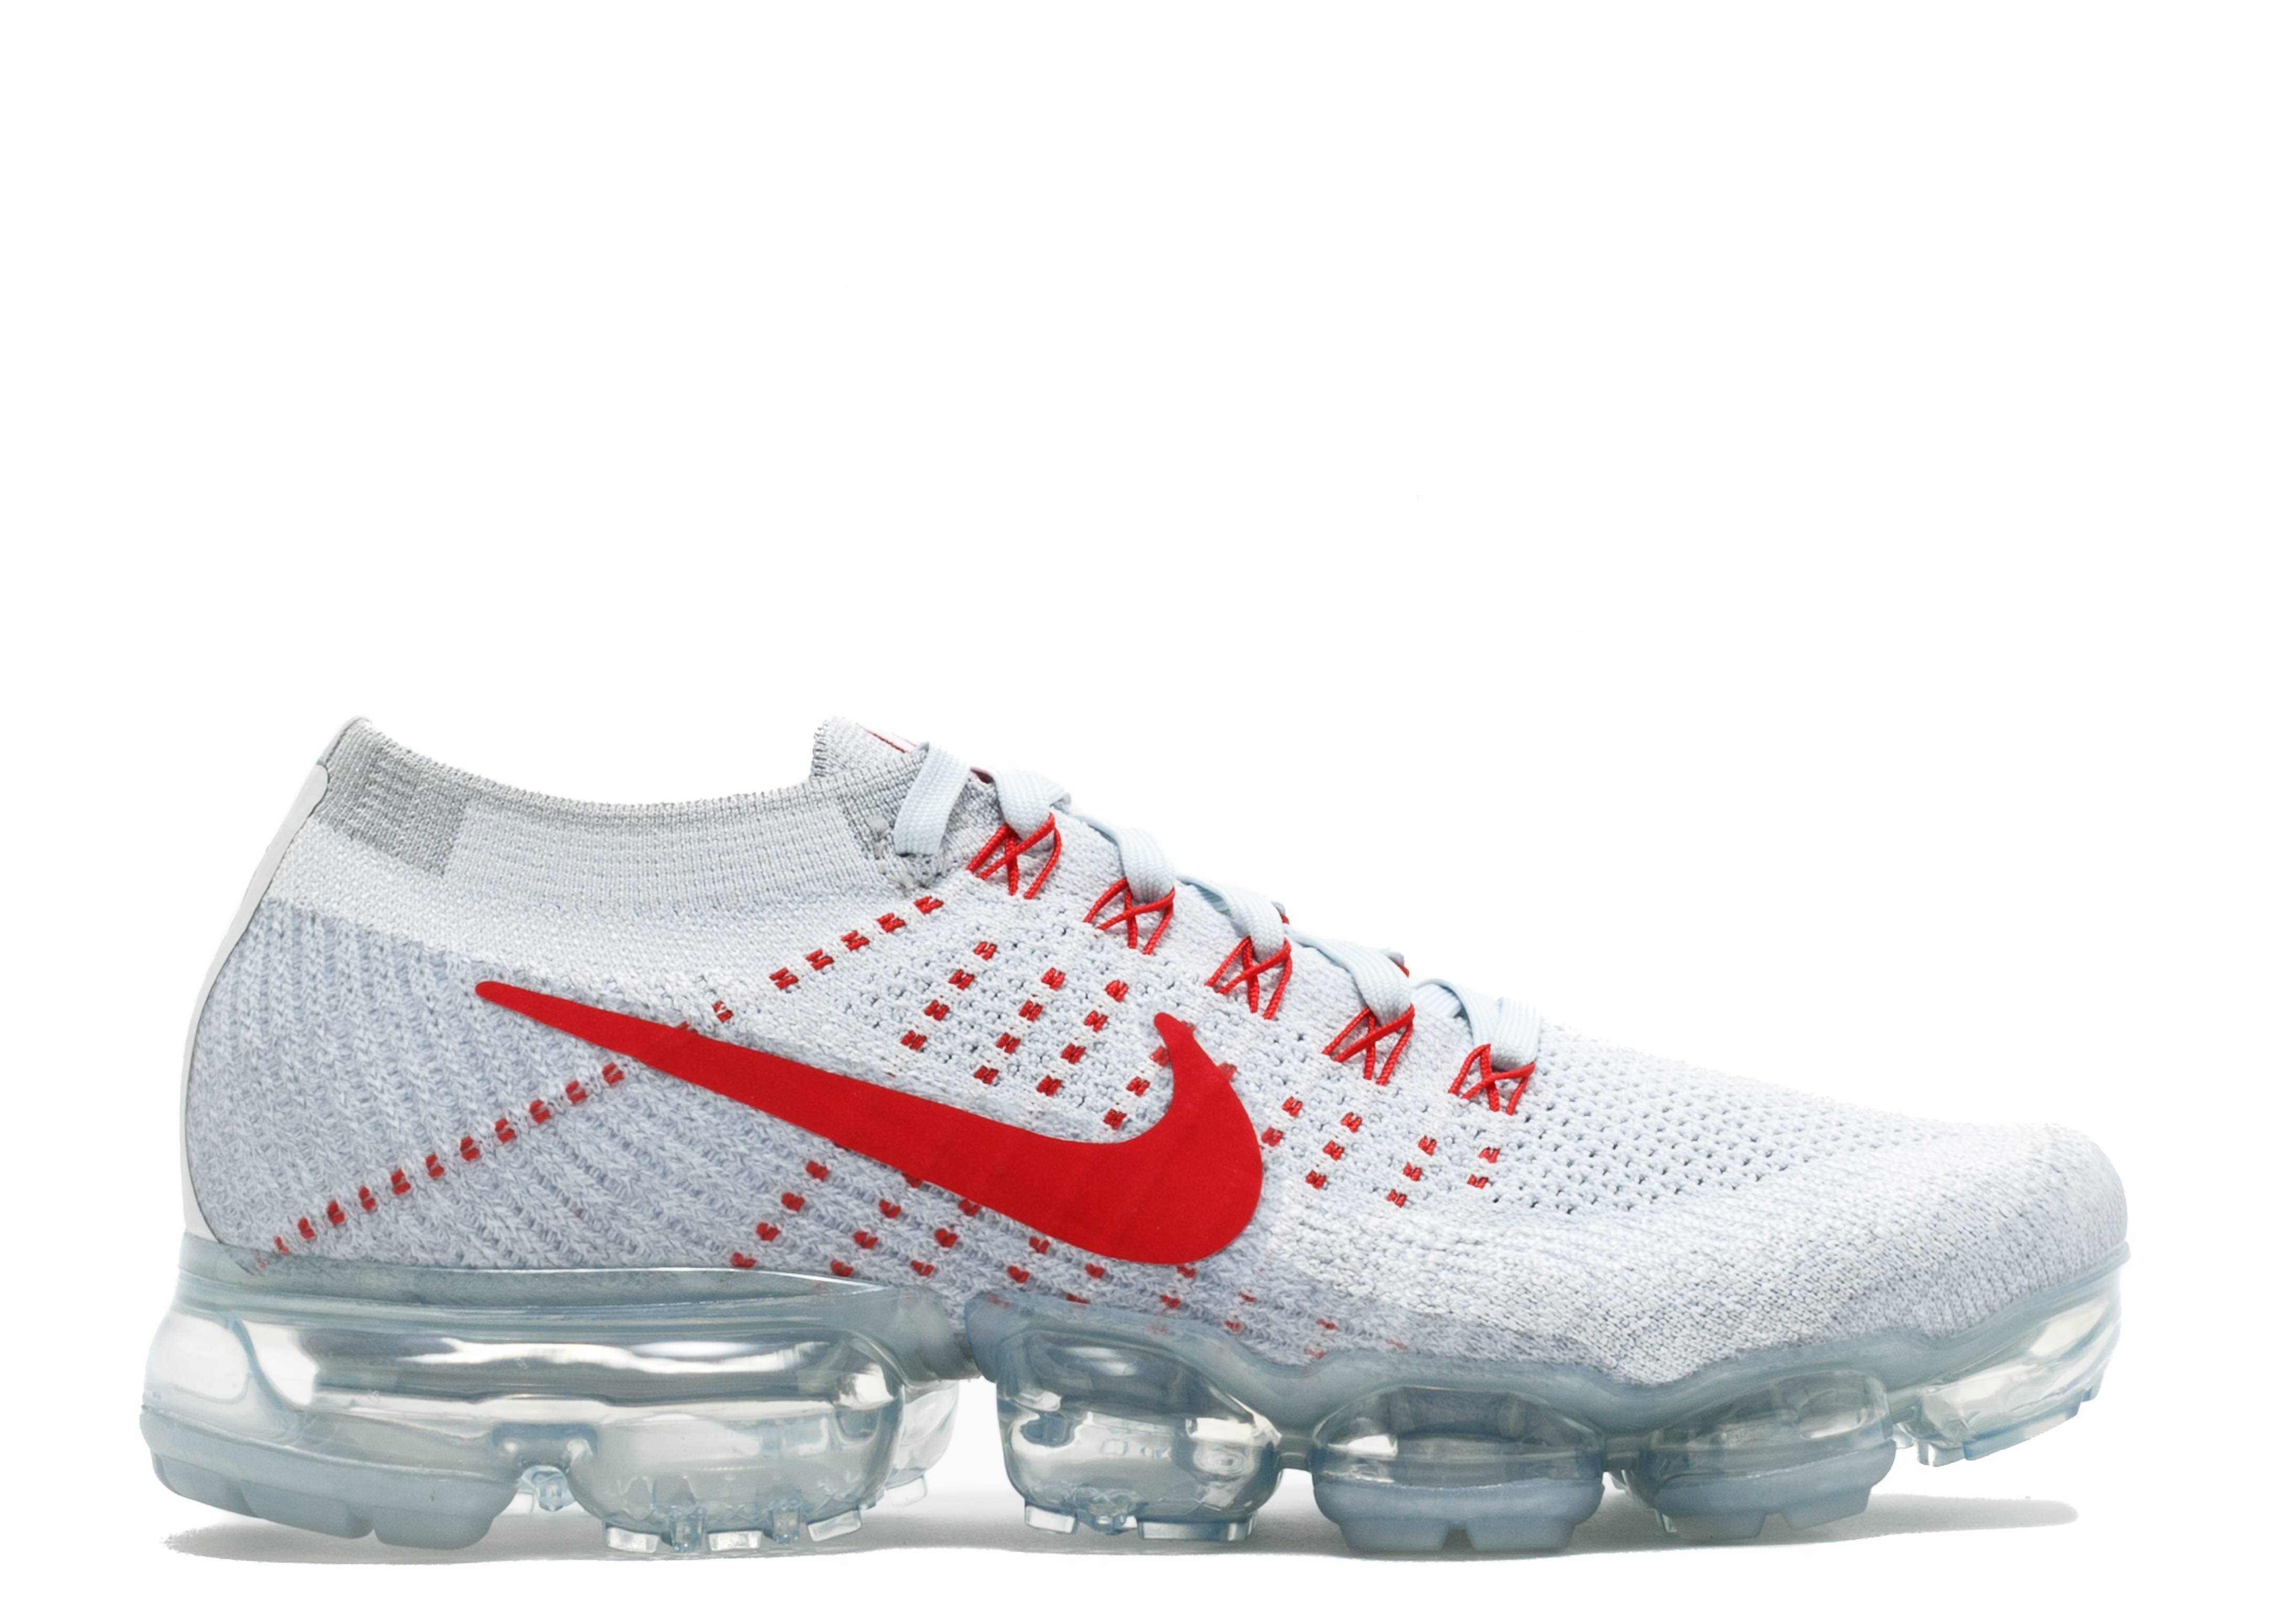 83aac9f9be36 Wmns Nike Air Vapormax Flyknit - Nike - 849557 060 - pure platinum ...